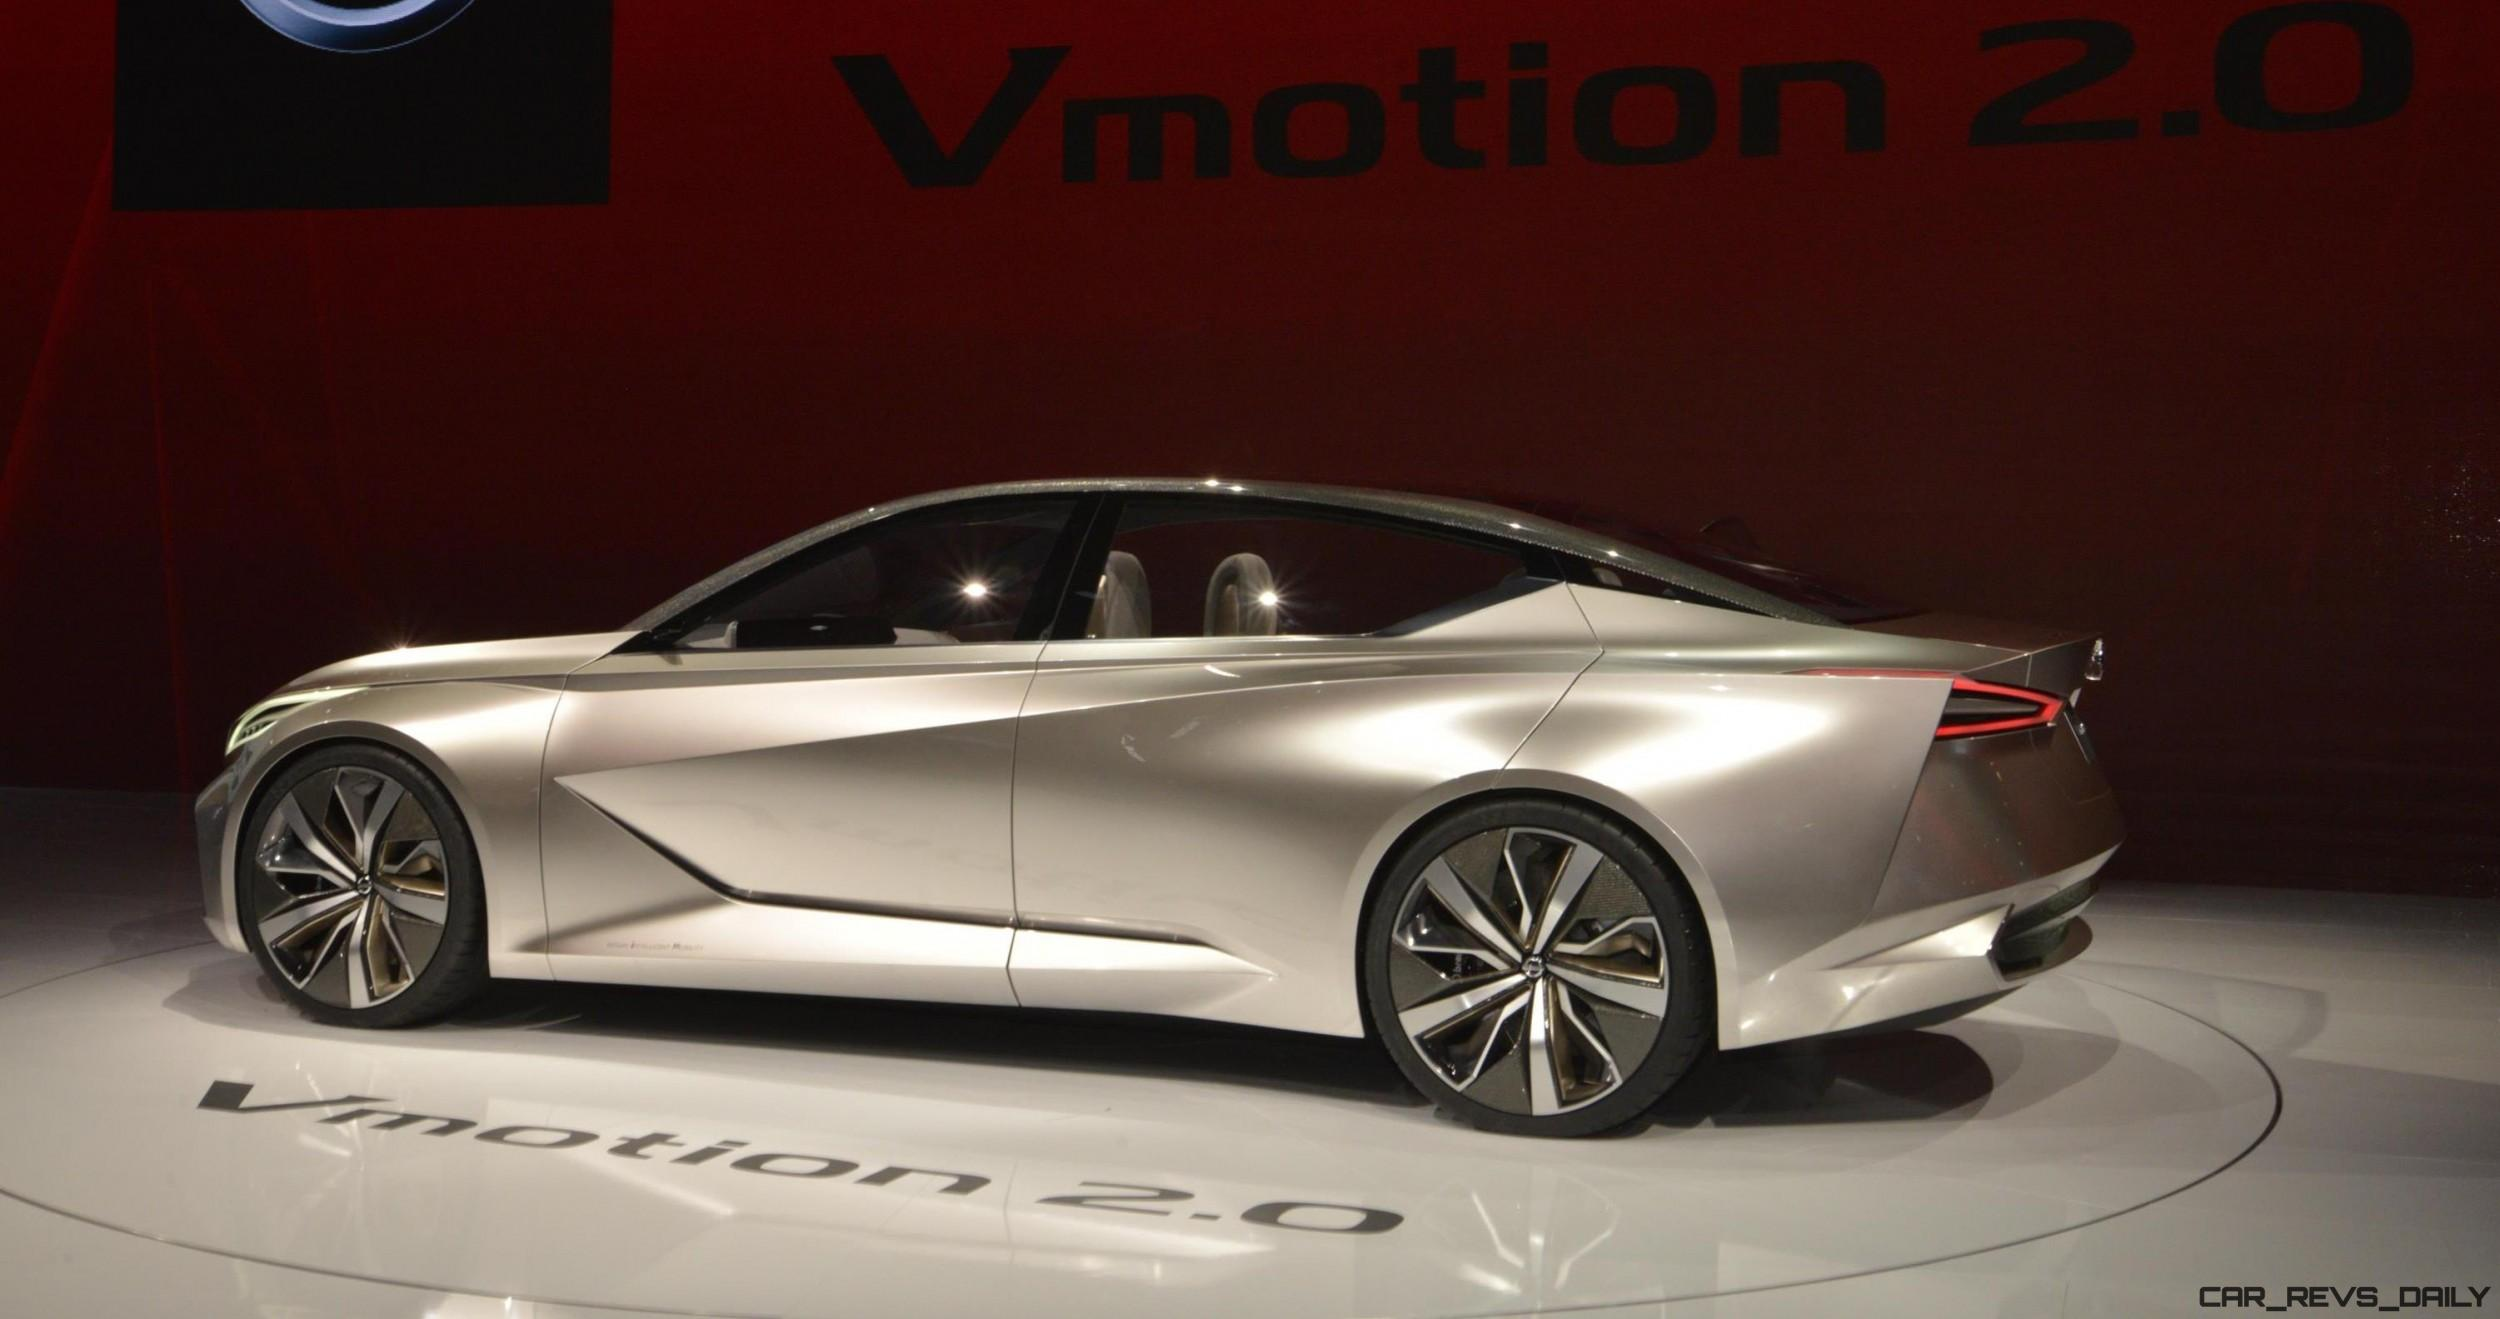 2017 Nissan Vmotion 2.0 Shows Razor-Sharp New Design Direction